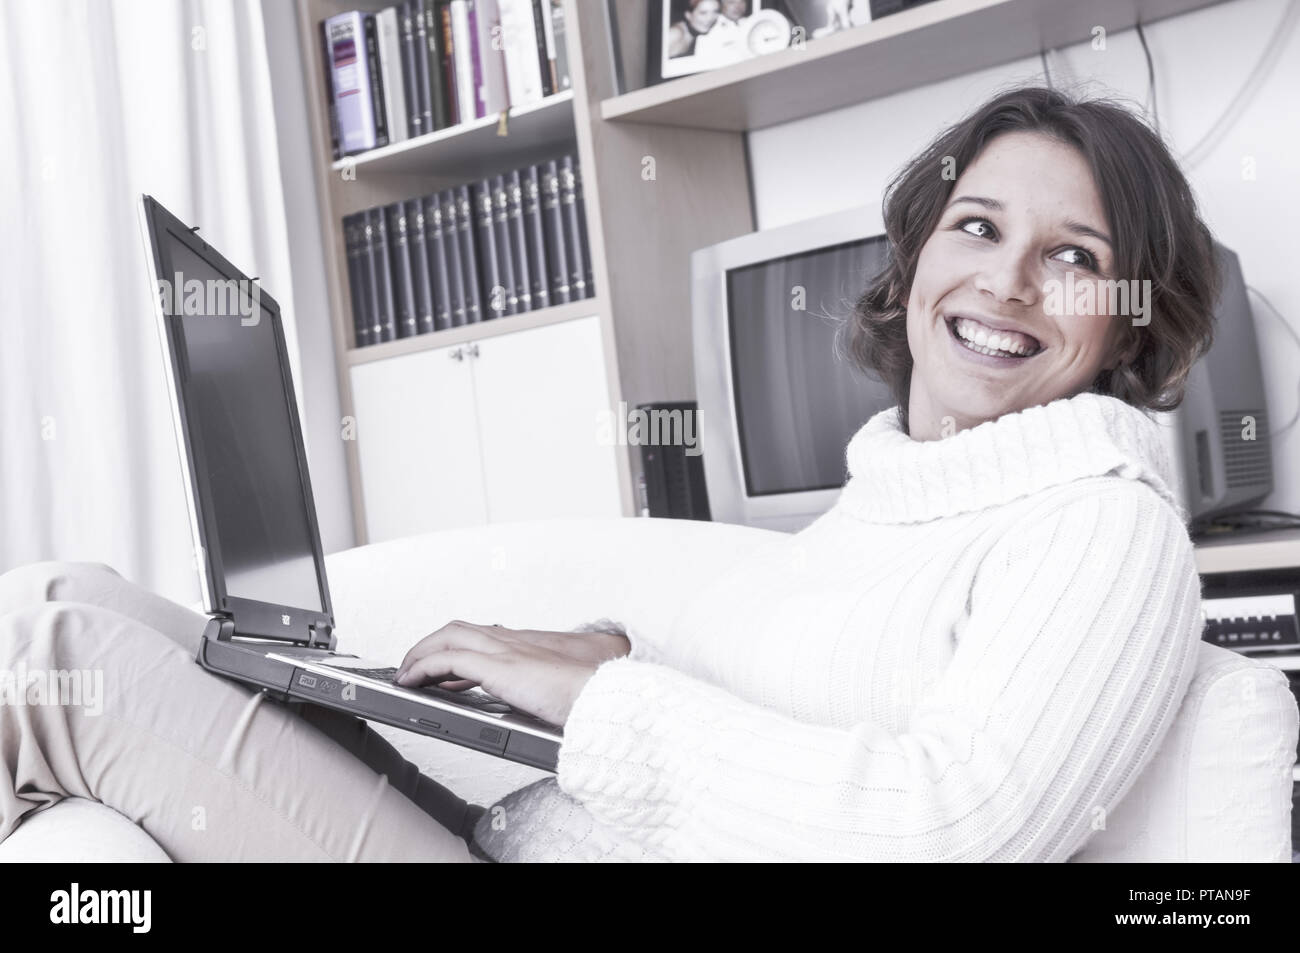 Young woman with laptop in living room (model-released) Stock Photo